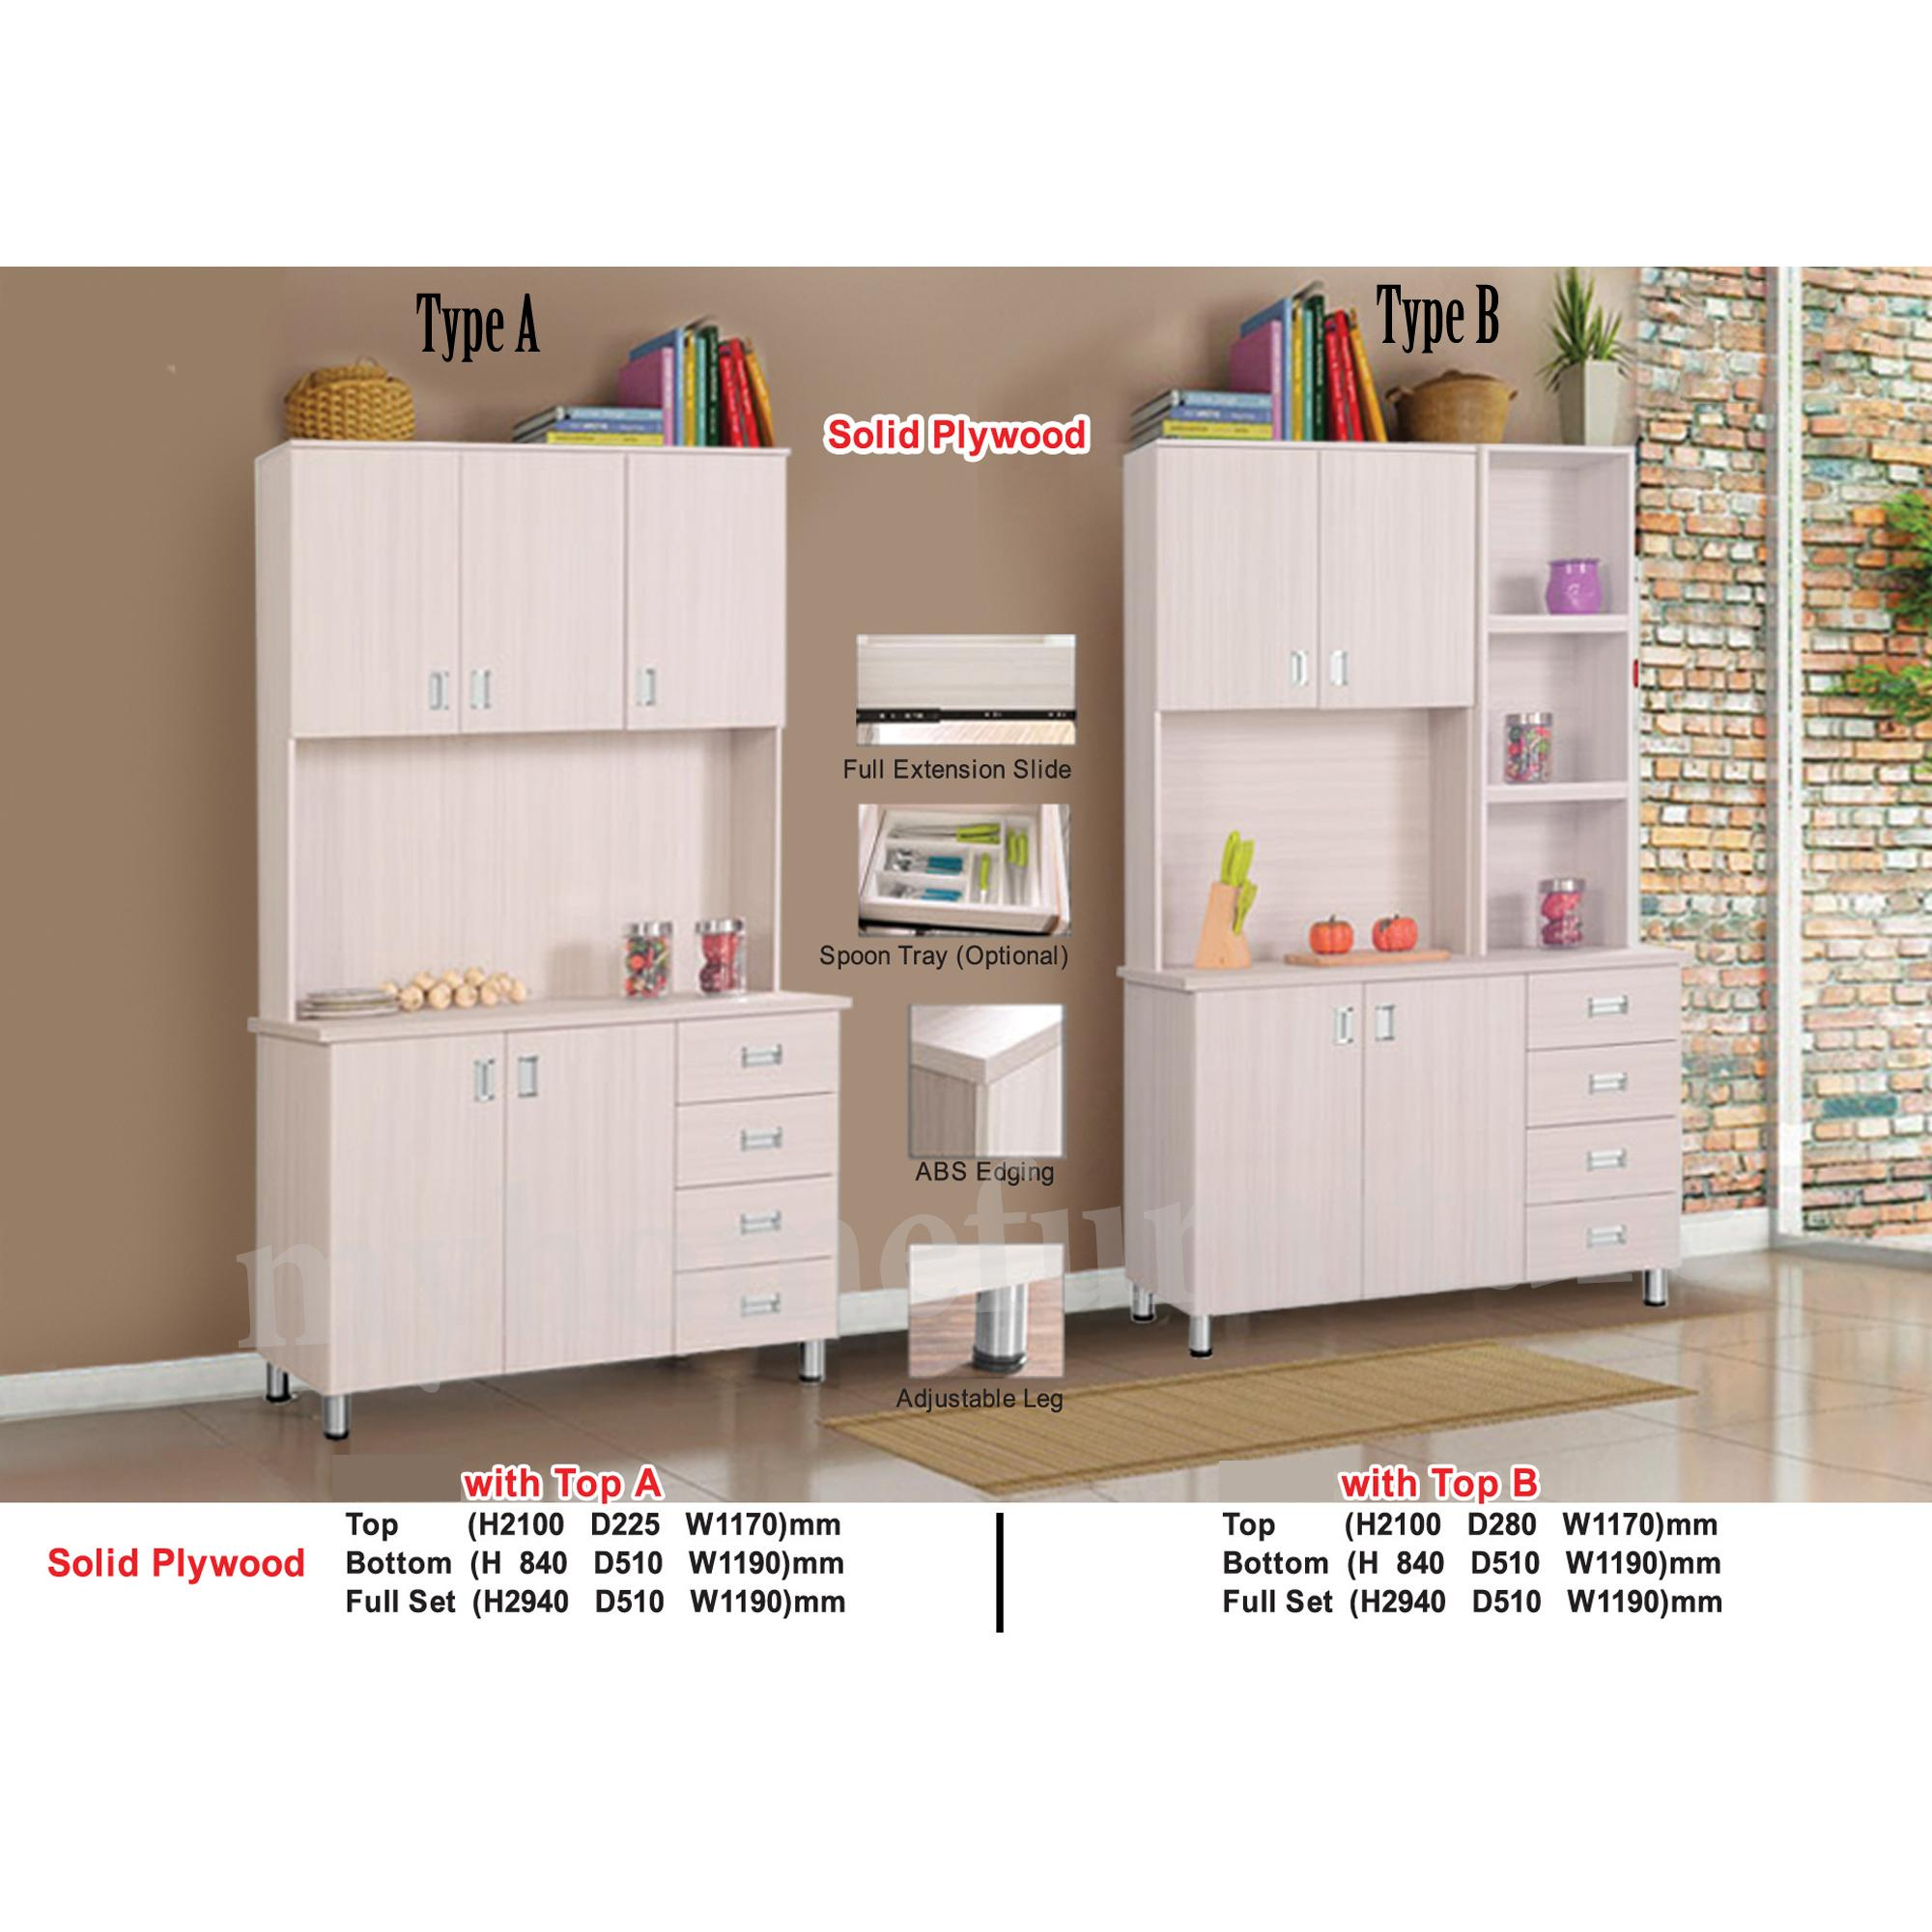 Albe 4ft Kitchen Cabinet 100% Solid Plywood (Free Installation and Delivery)